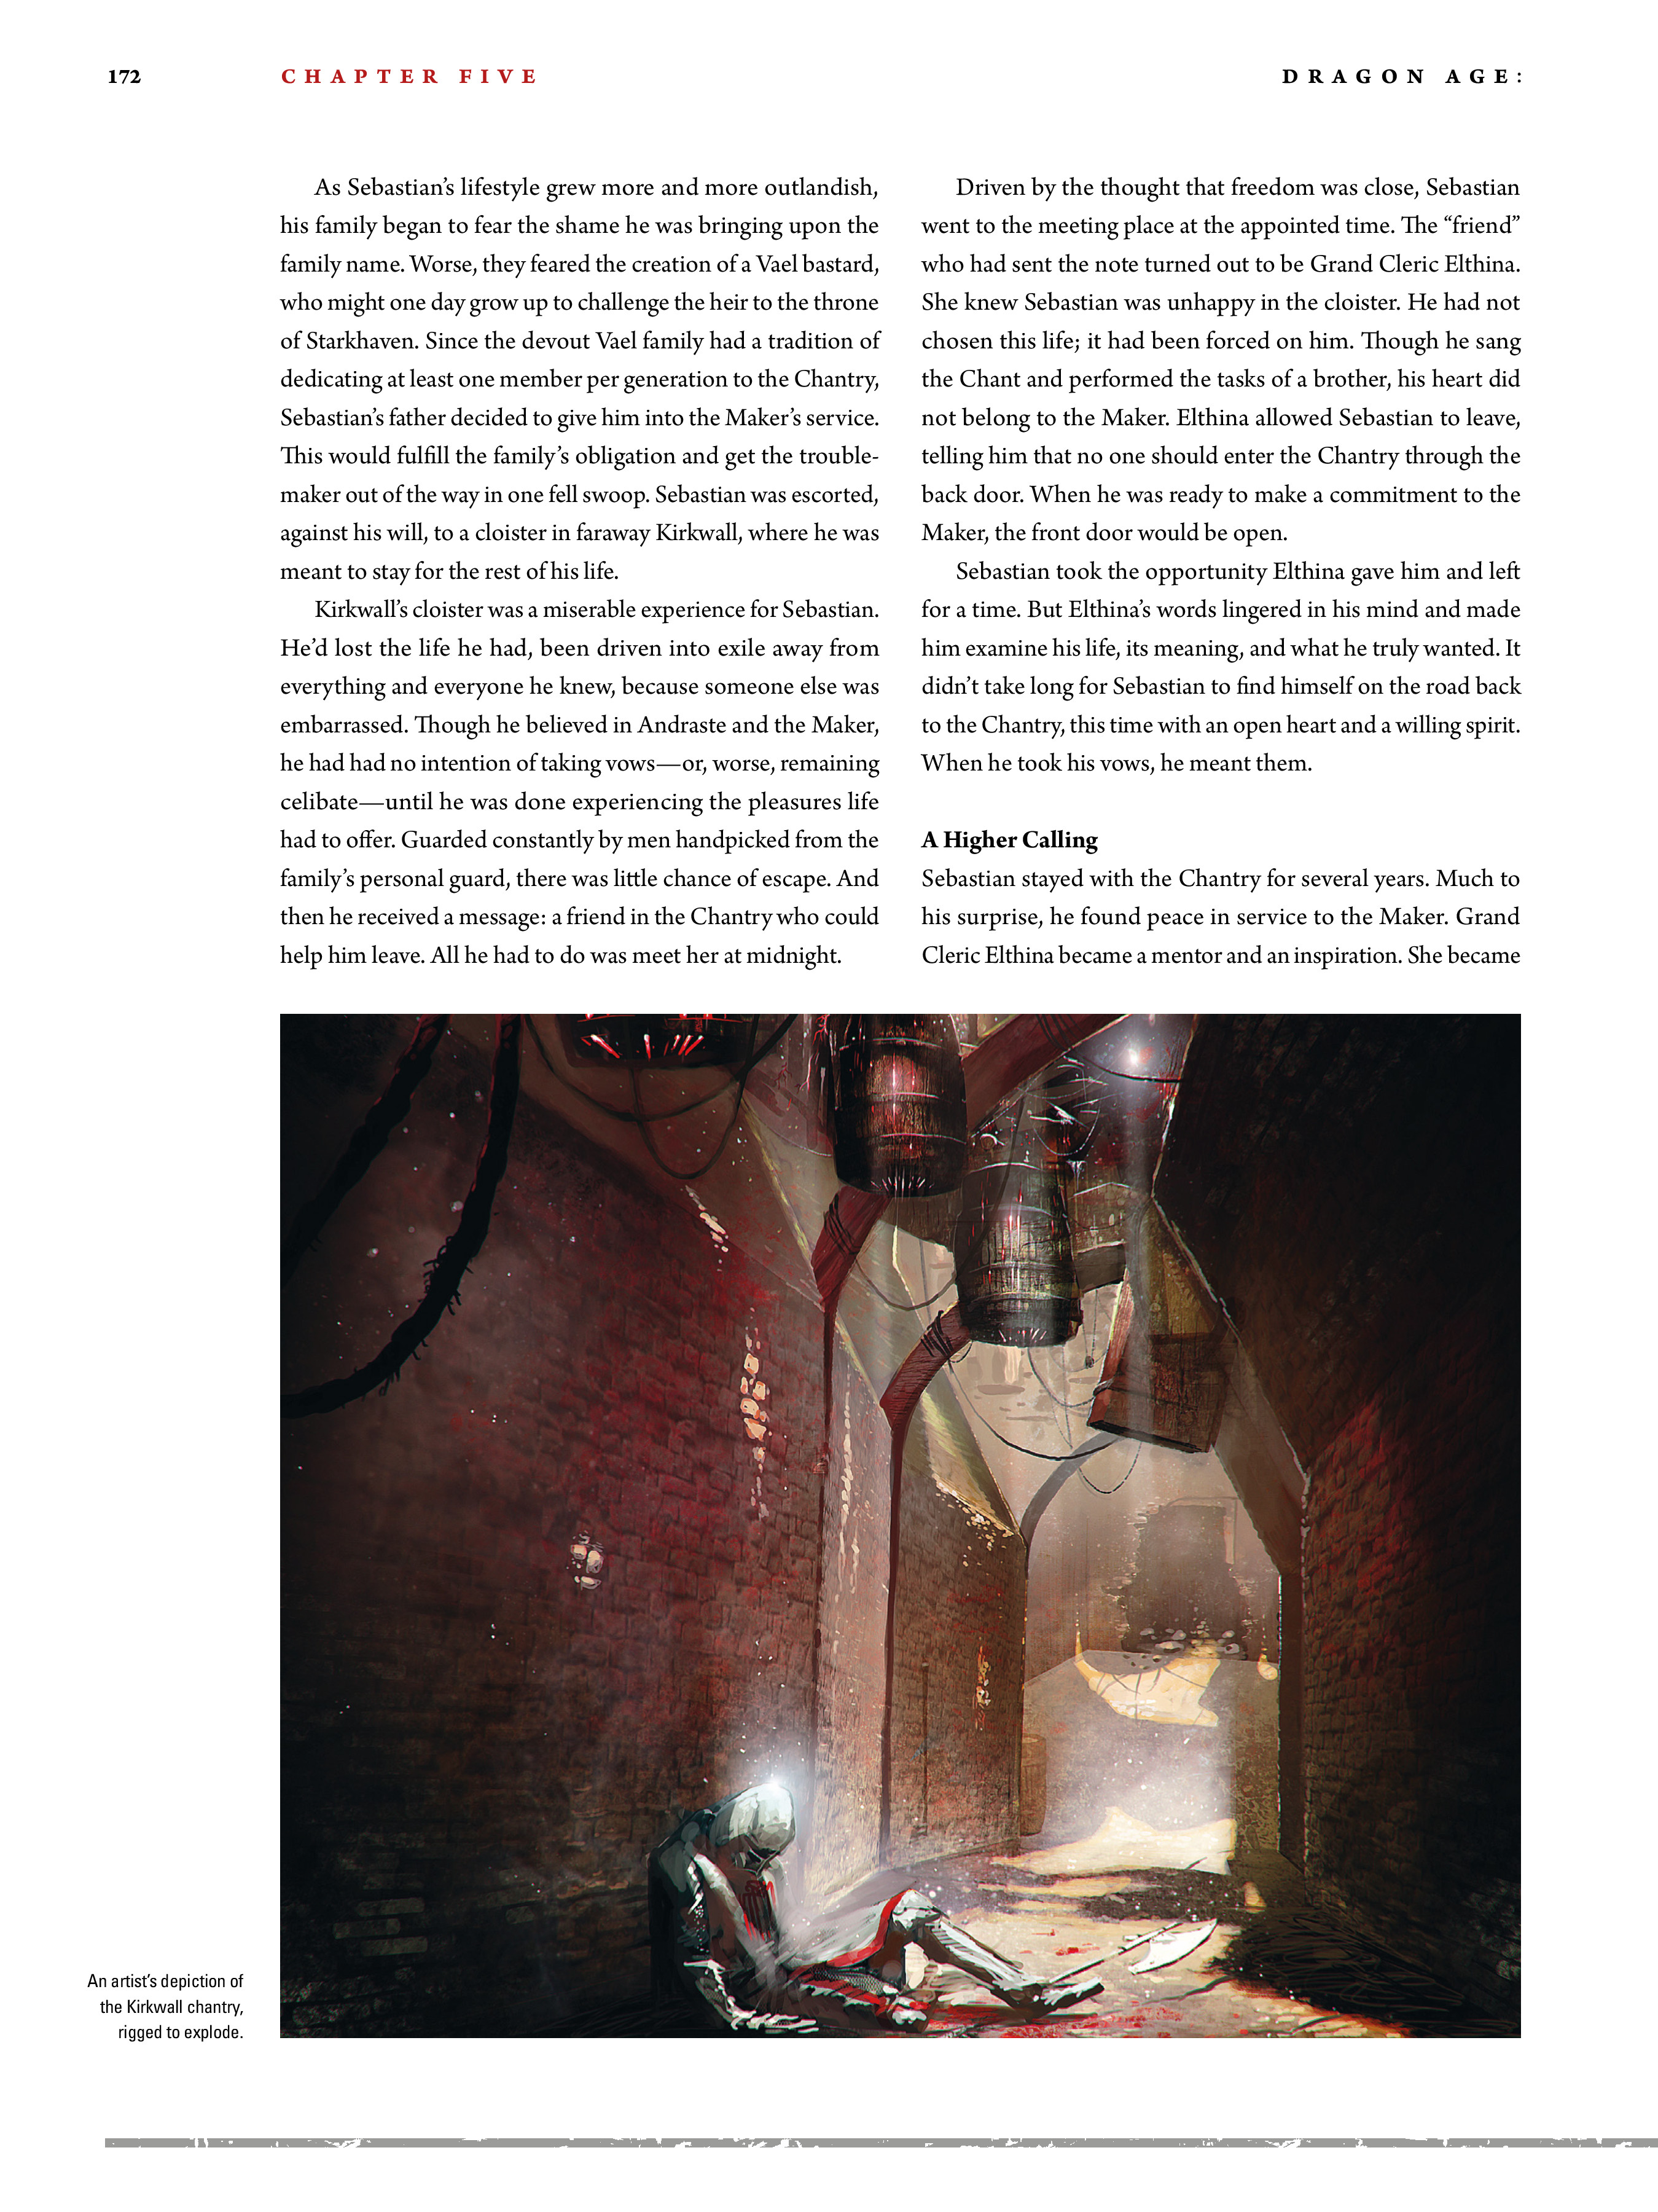 Read online Dragon Age: The World of Thedas comic -  Issue # TPB 2 - 167